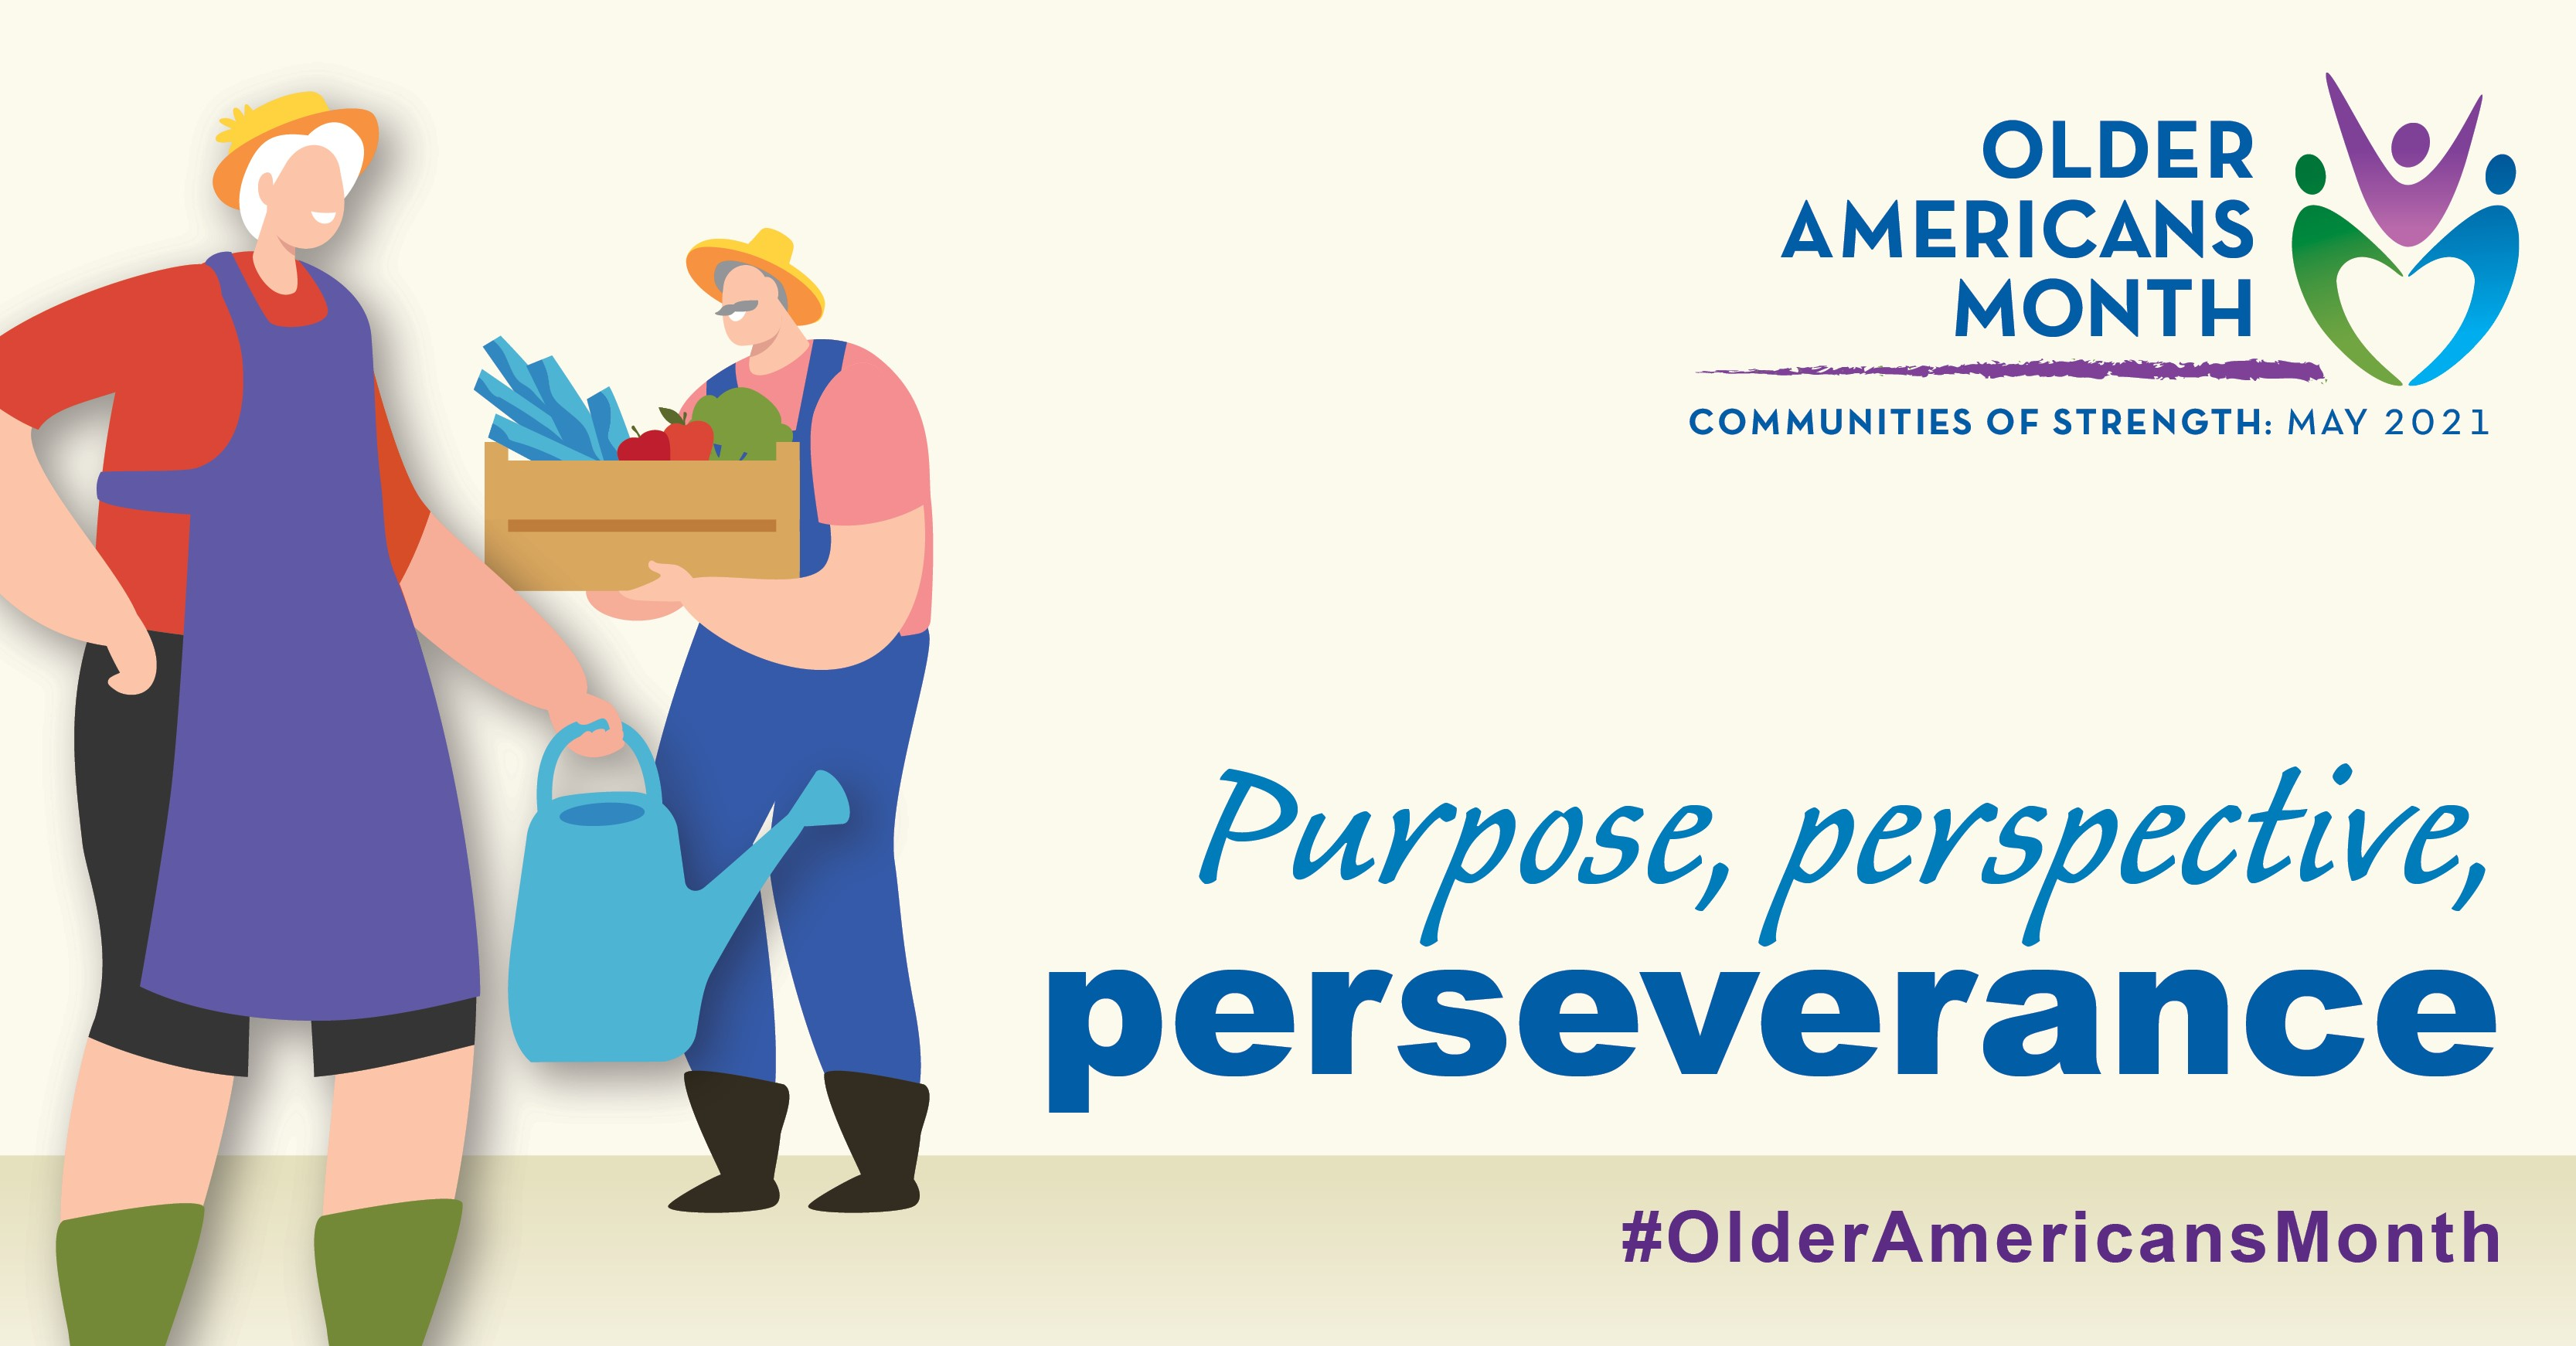 Social Media Cover Image: Older Americans Month, Communities of Strength, May 2021. Purpose, perspective, perseverance. #OlderAmericansMonth